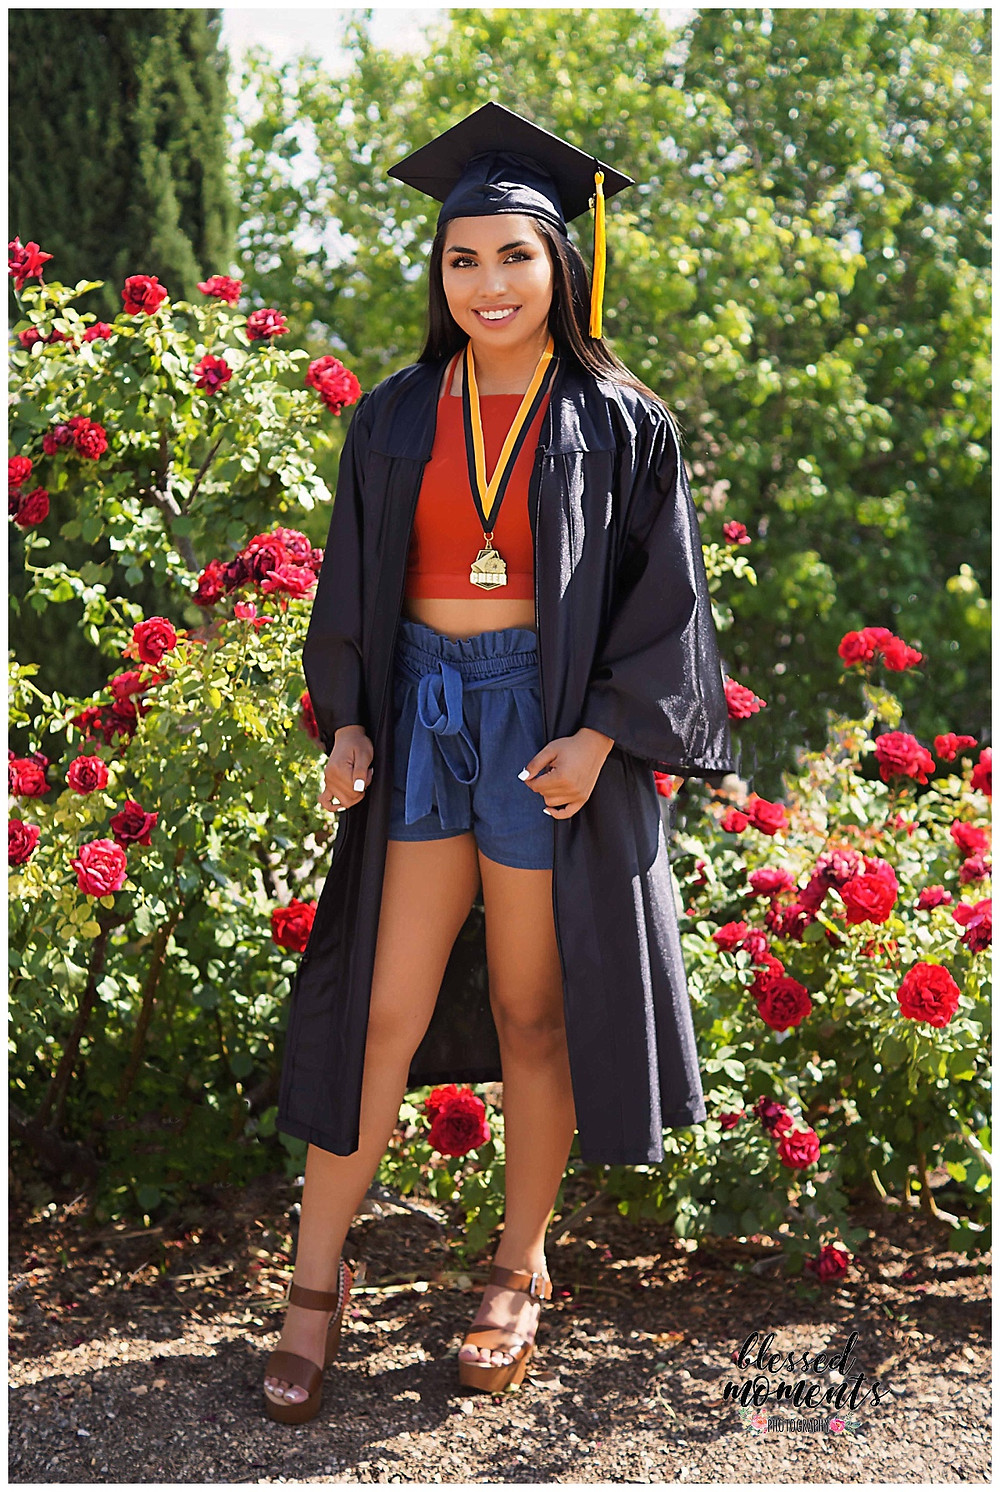 El Paso High School Senior photos done in Rose Garden